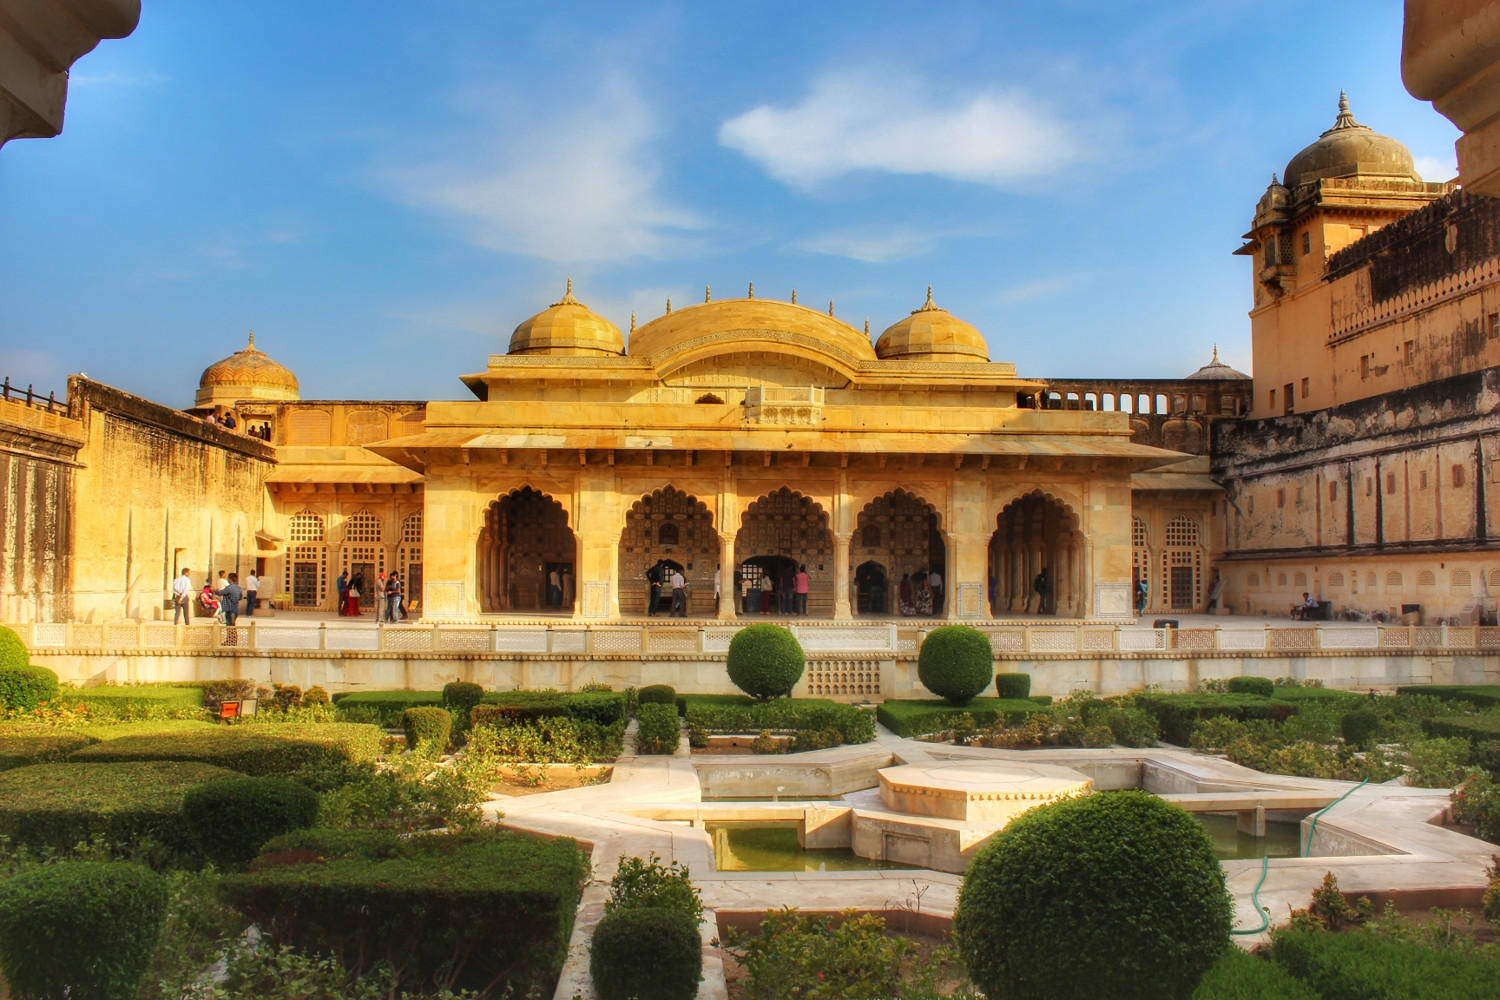 Sheesh Mahal - Amber Fort in Jaipur, India. Read this ultimate guide to Jaipur (Pink City) India and learn the top things to do in Jaipur India, food in Jaipur, accommodation in Jaipur from an insider. #Jaipur #India #indiatravel #Jaipurguide #Jaipur #Asia #travelasia #travelguide #Jaipurguide